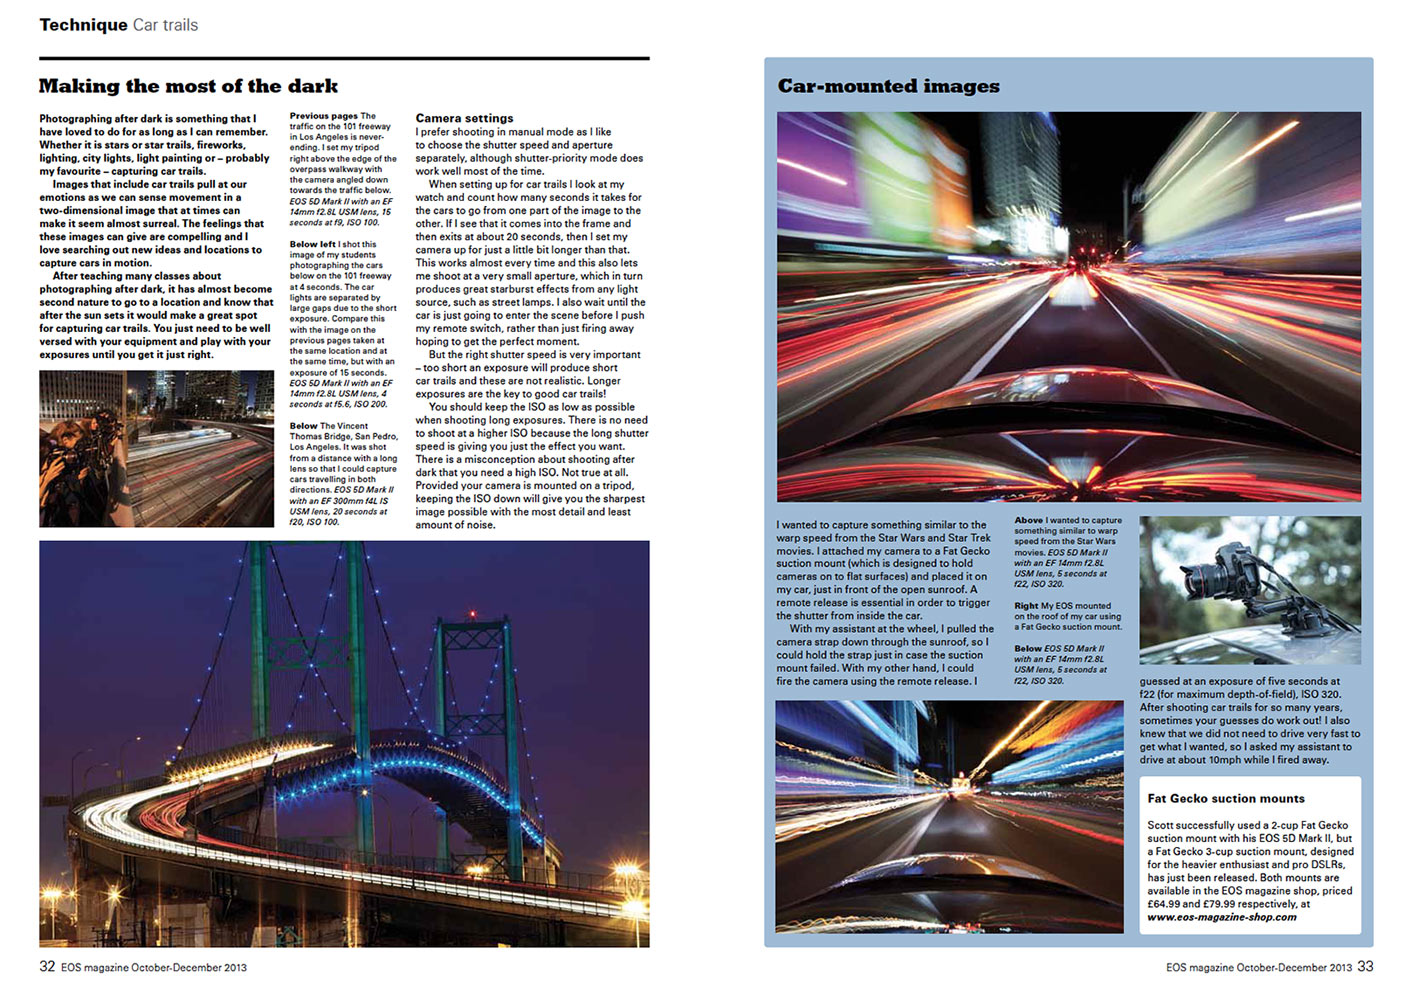 Article on car trails for EOS Magazine